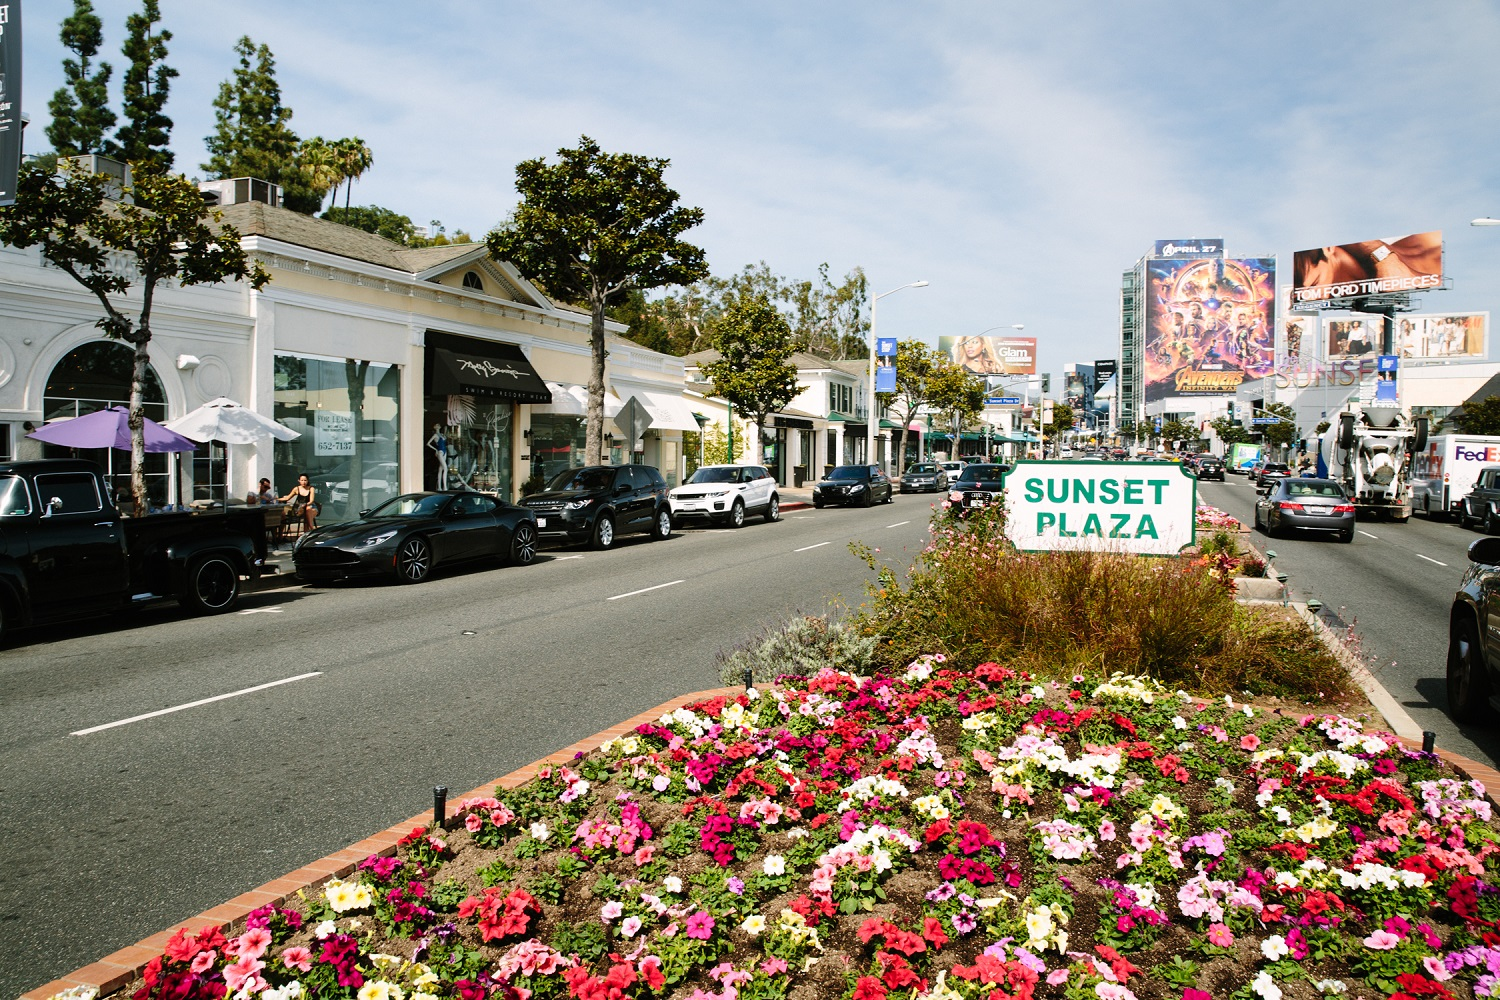 Sunset Plaza in West Hollywood